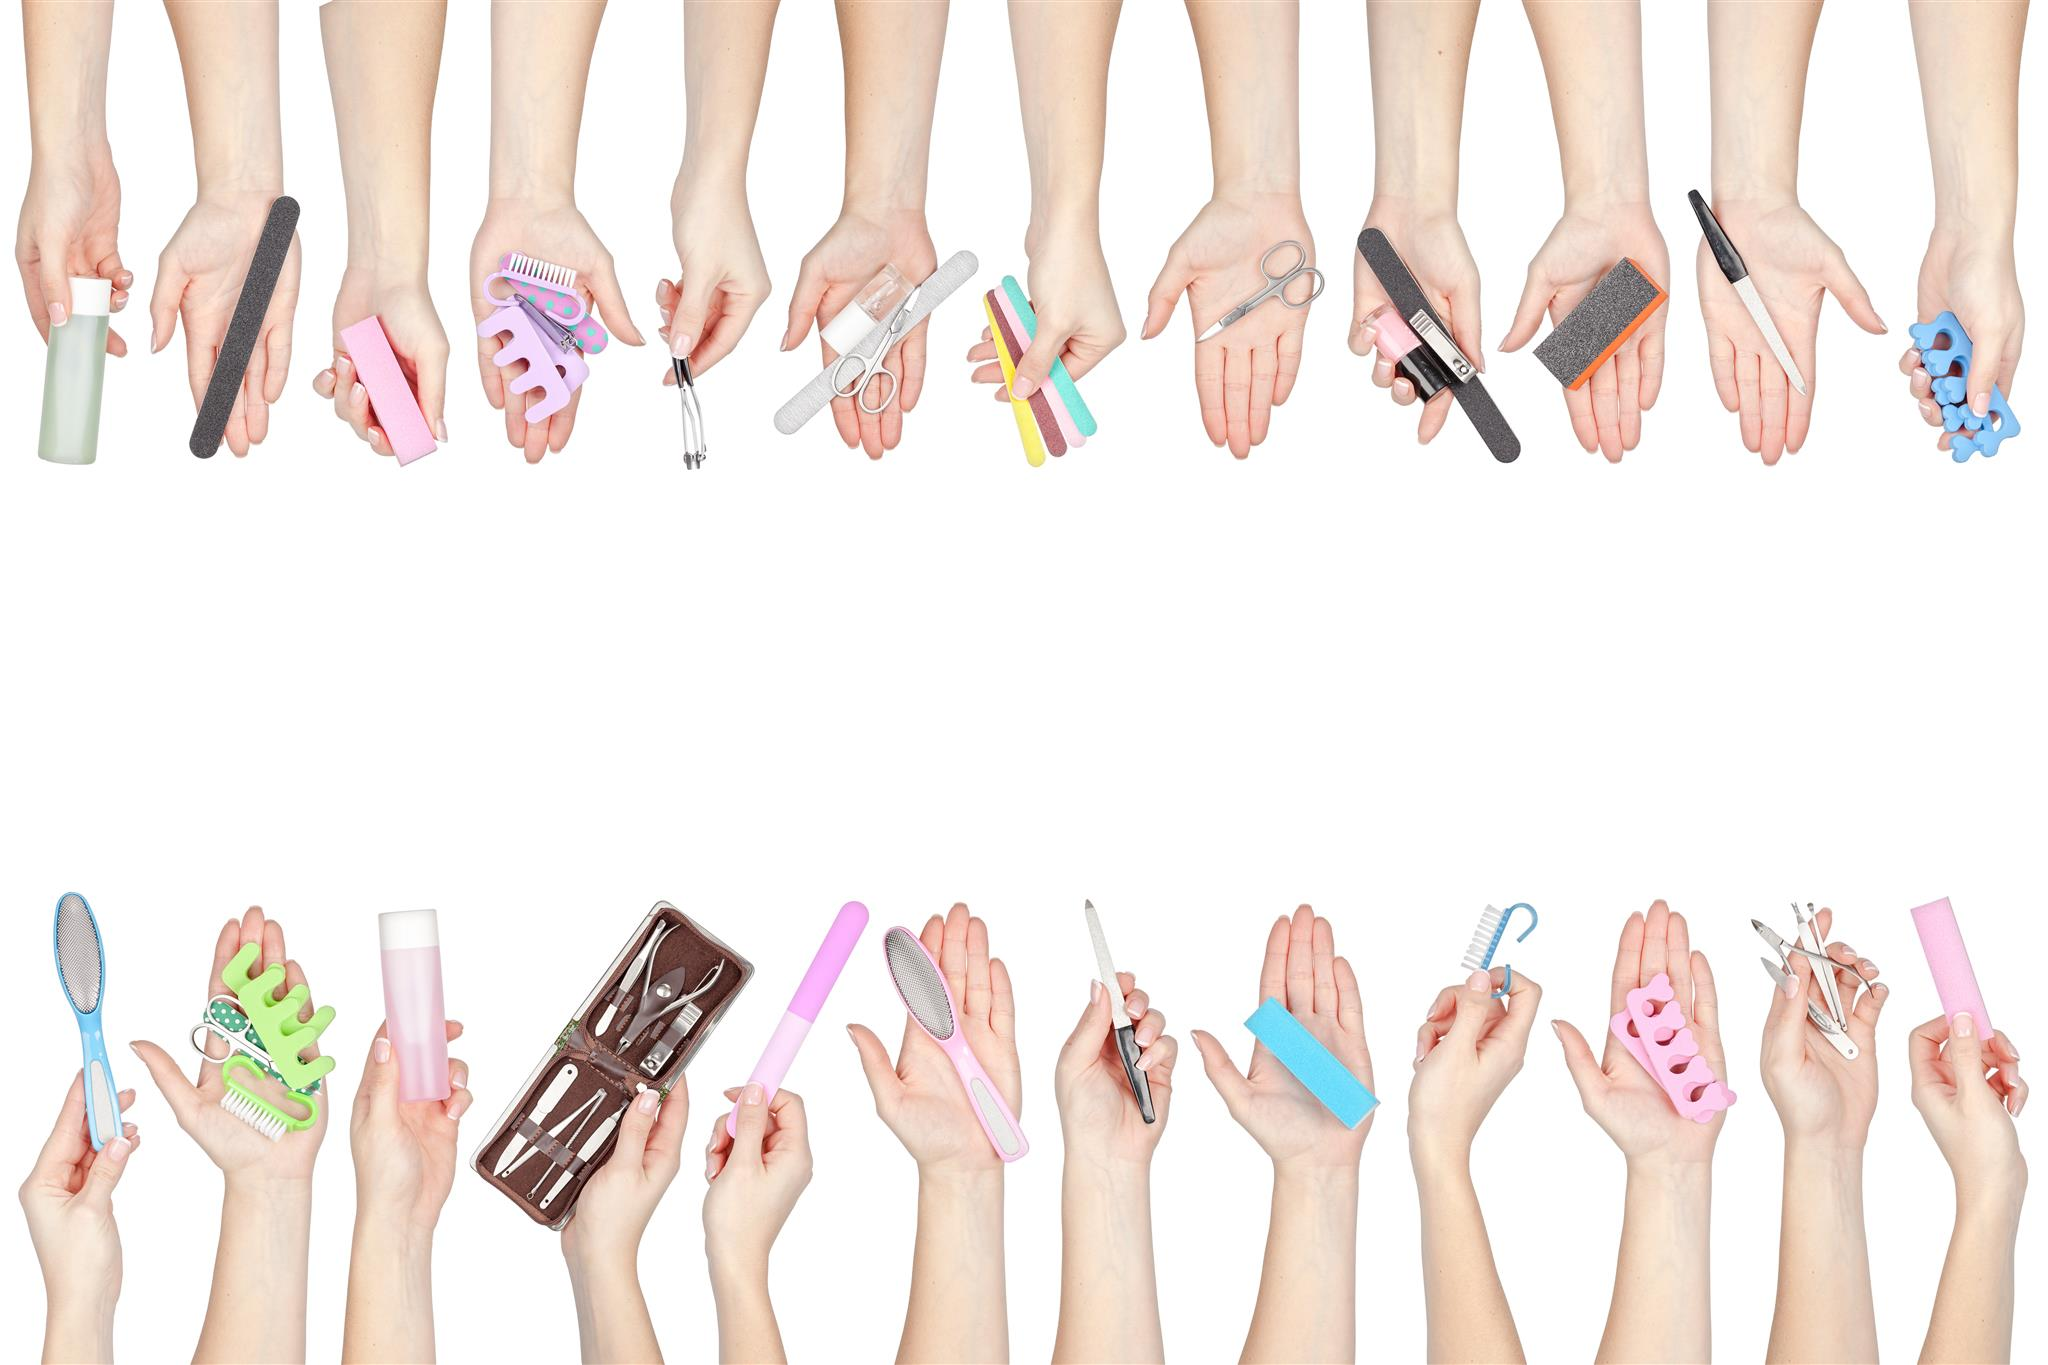 Gel-Nails.com: The Wholesale Nail Supply Store Your Business Needs ...